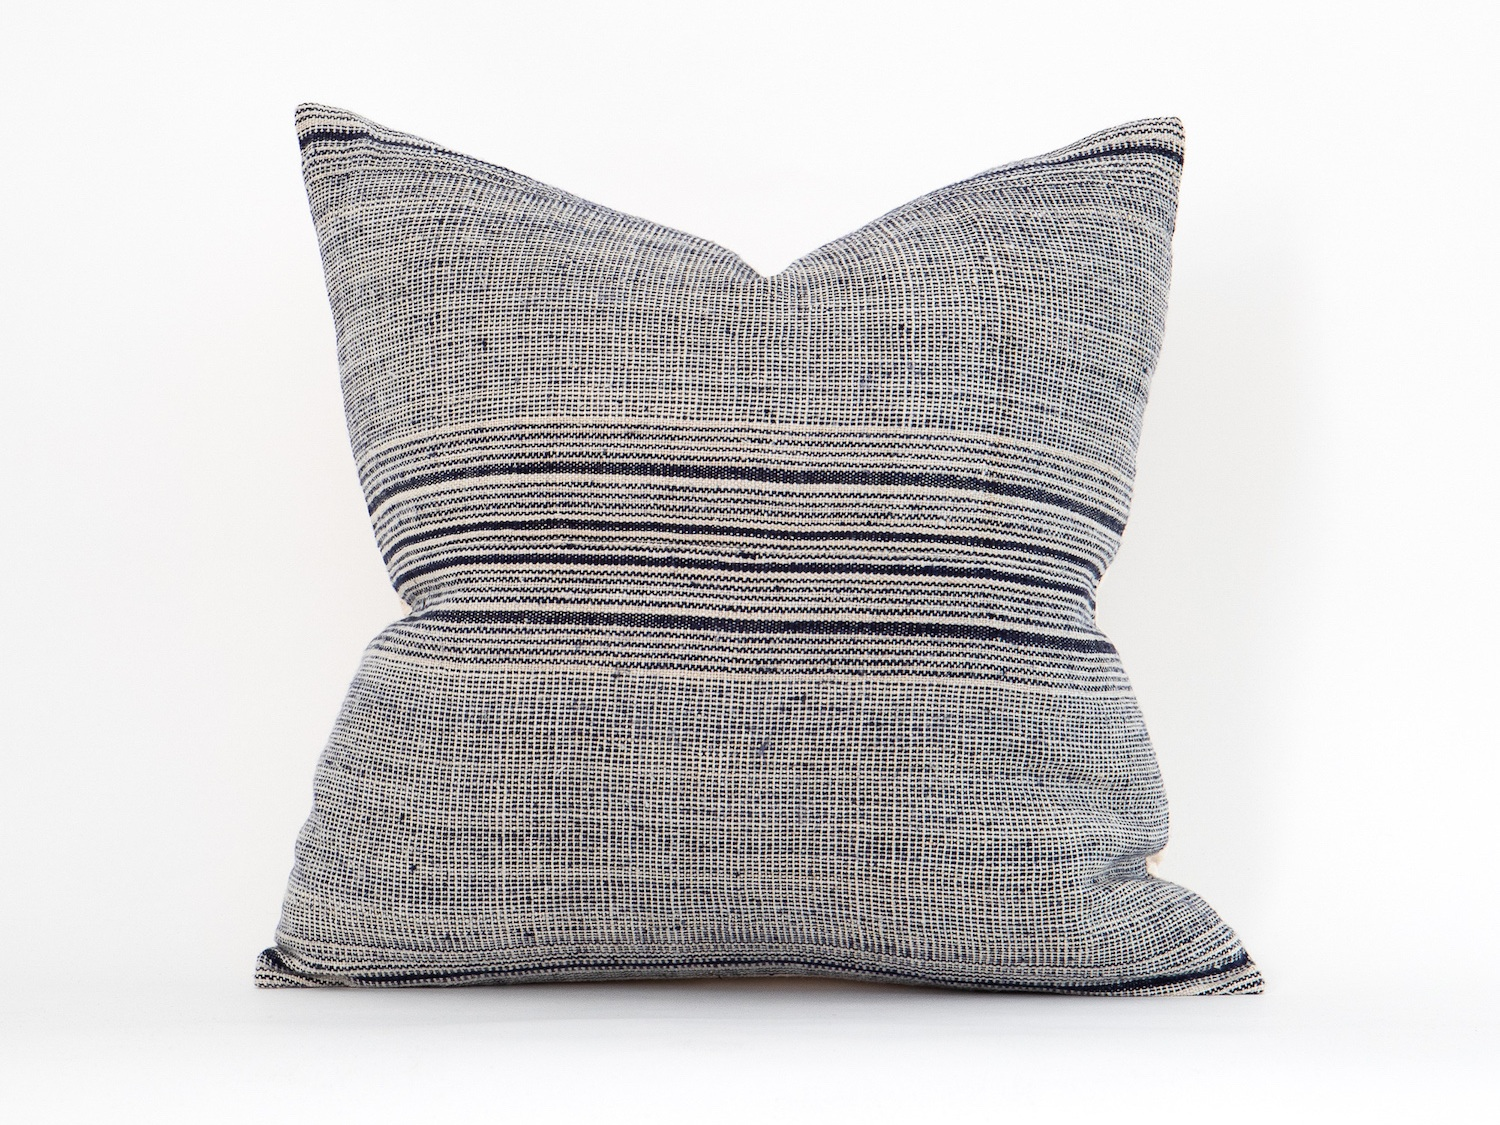 Navy Striped Hemp Pillow from The Vintage Rug Shop